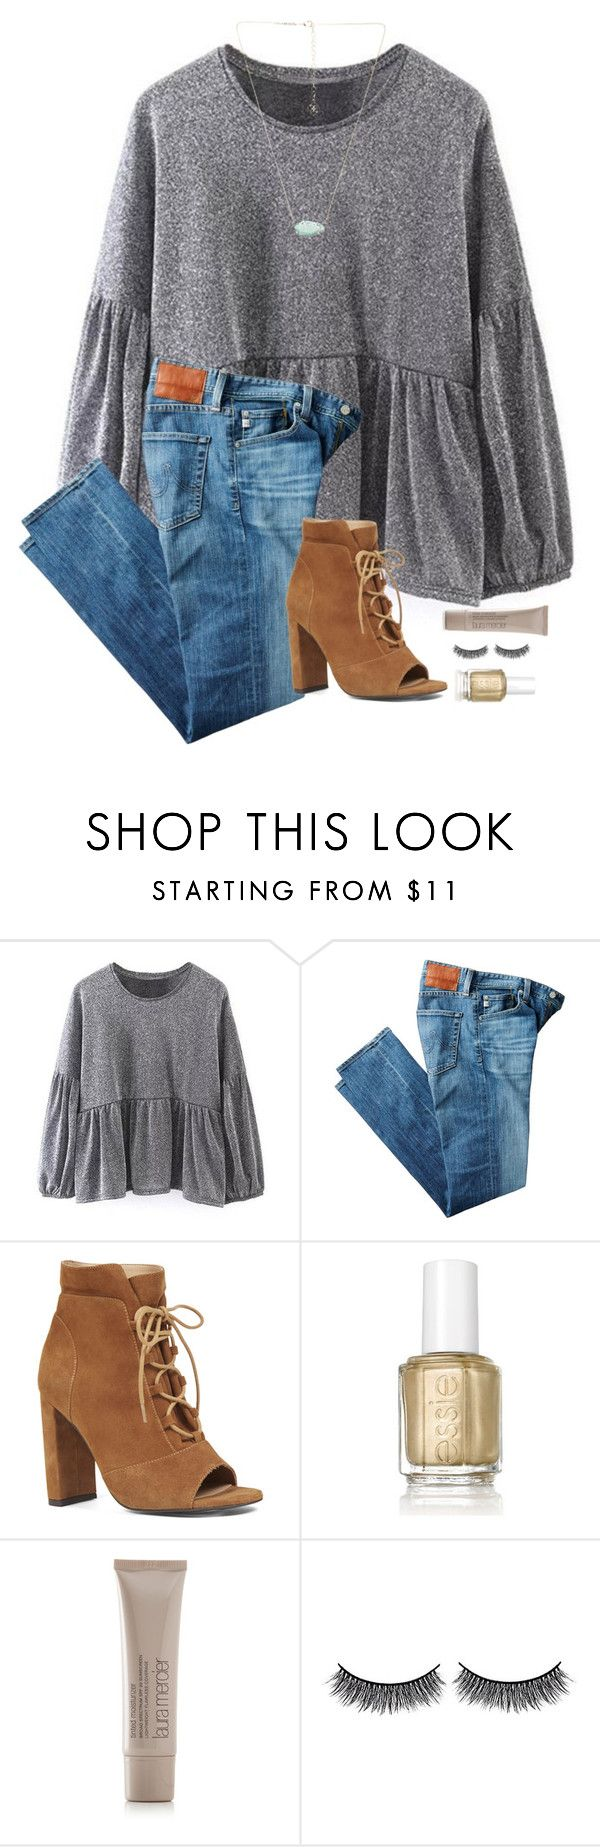 """i want some heels like this... thoughts?"" by blonde-prepster ❤ liked on Polyvore featuring AG Adriano Goldschmied, Nine West, Essie, Laura Mercier, Battington and Kendra Scott"